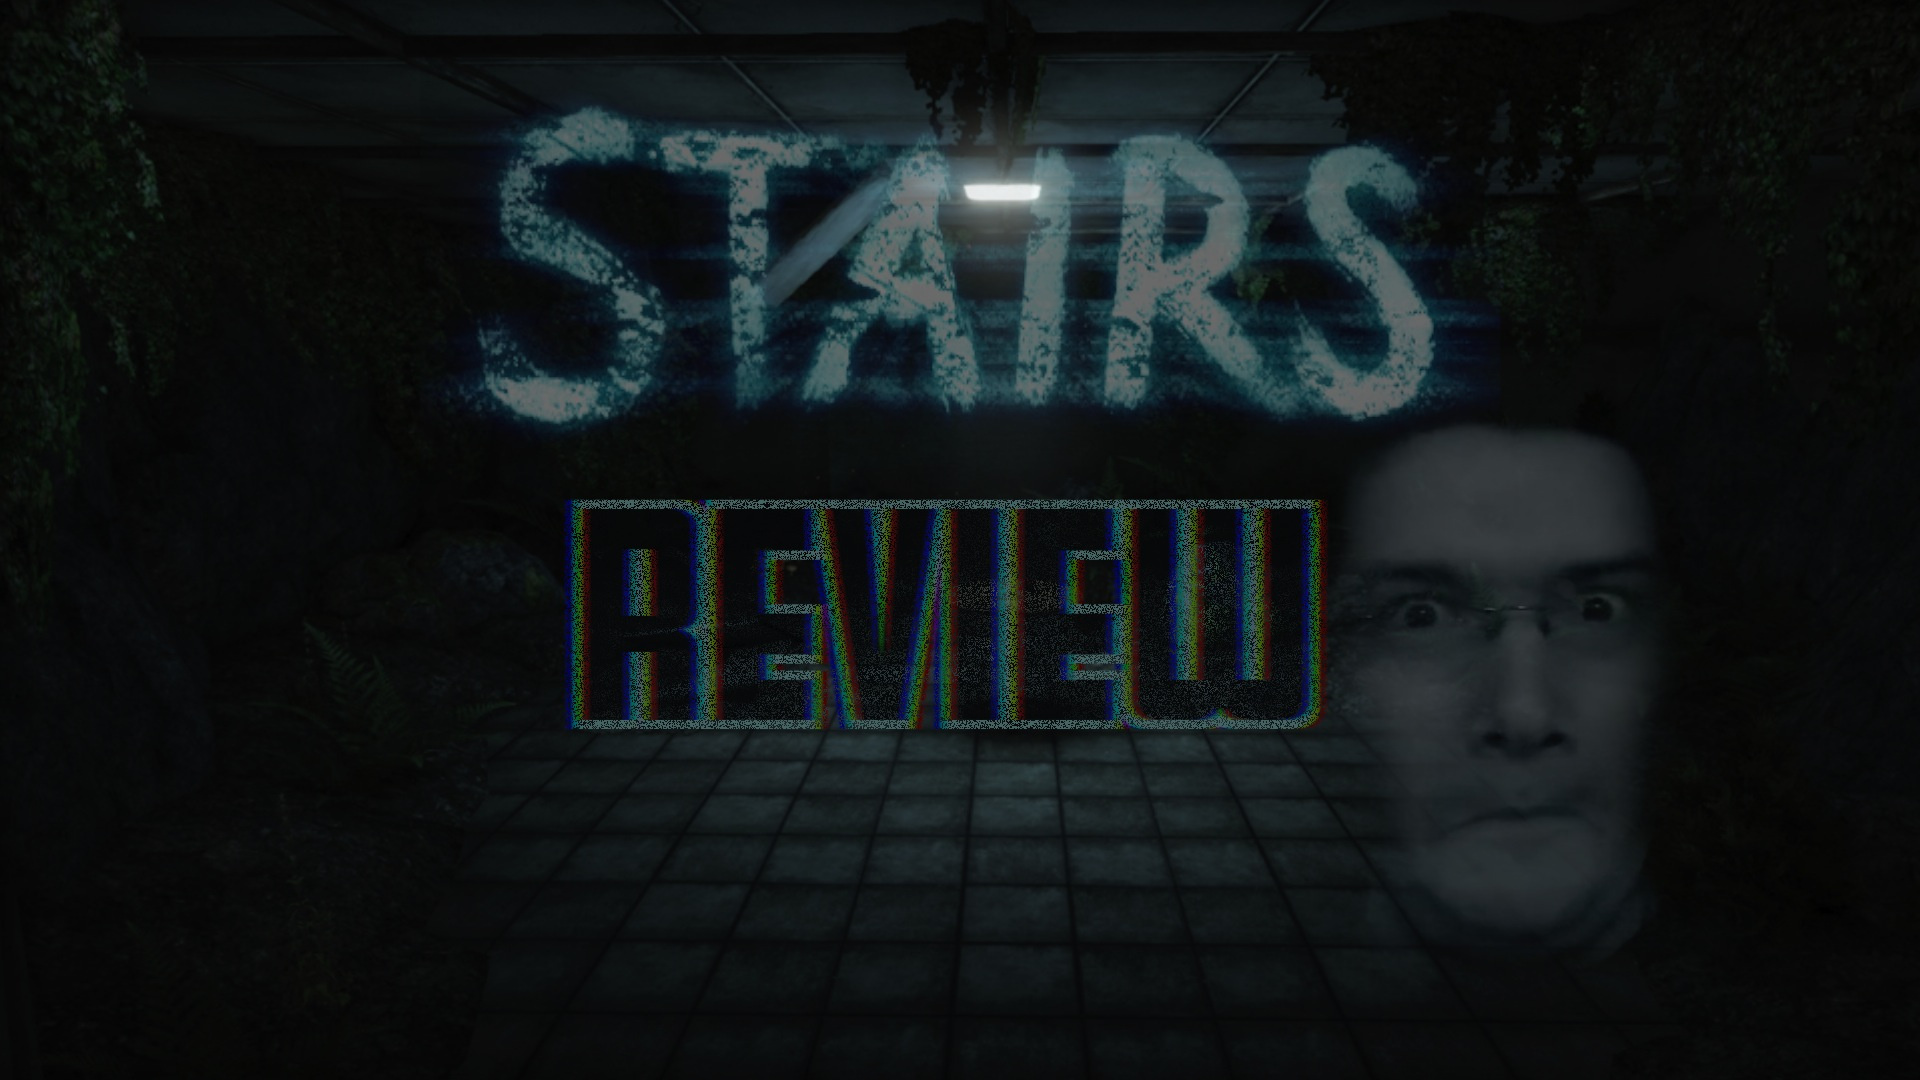 stairs-review.jpg